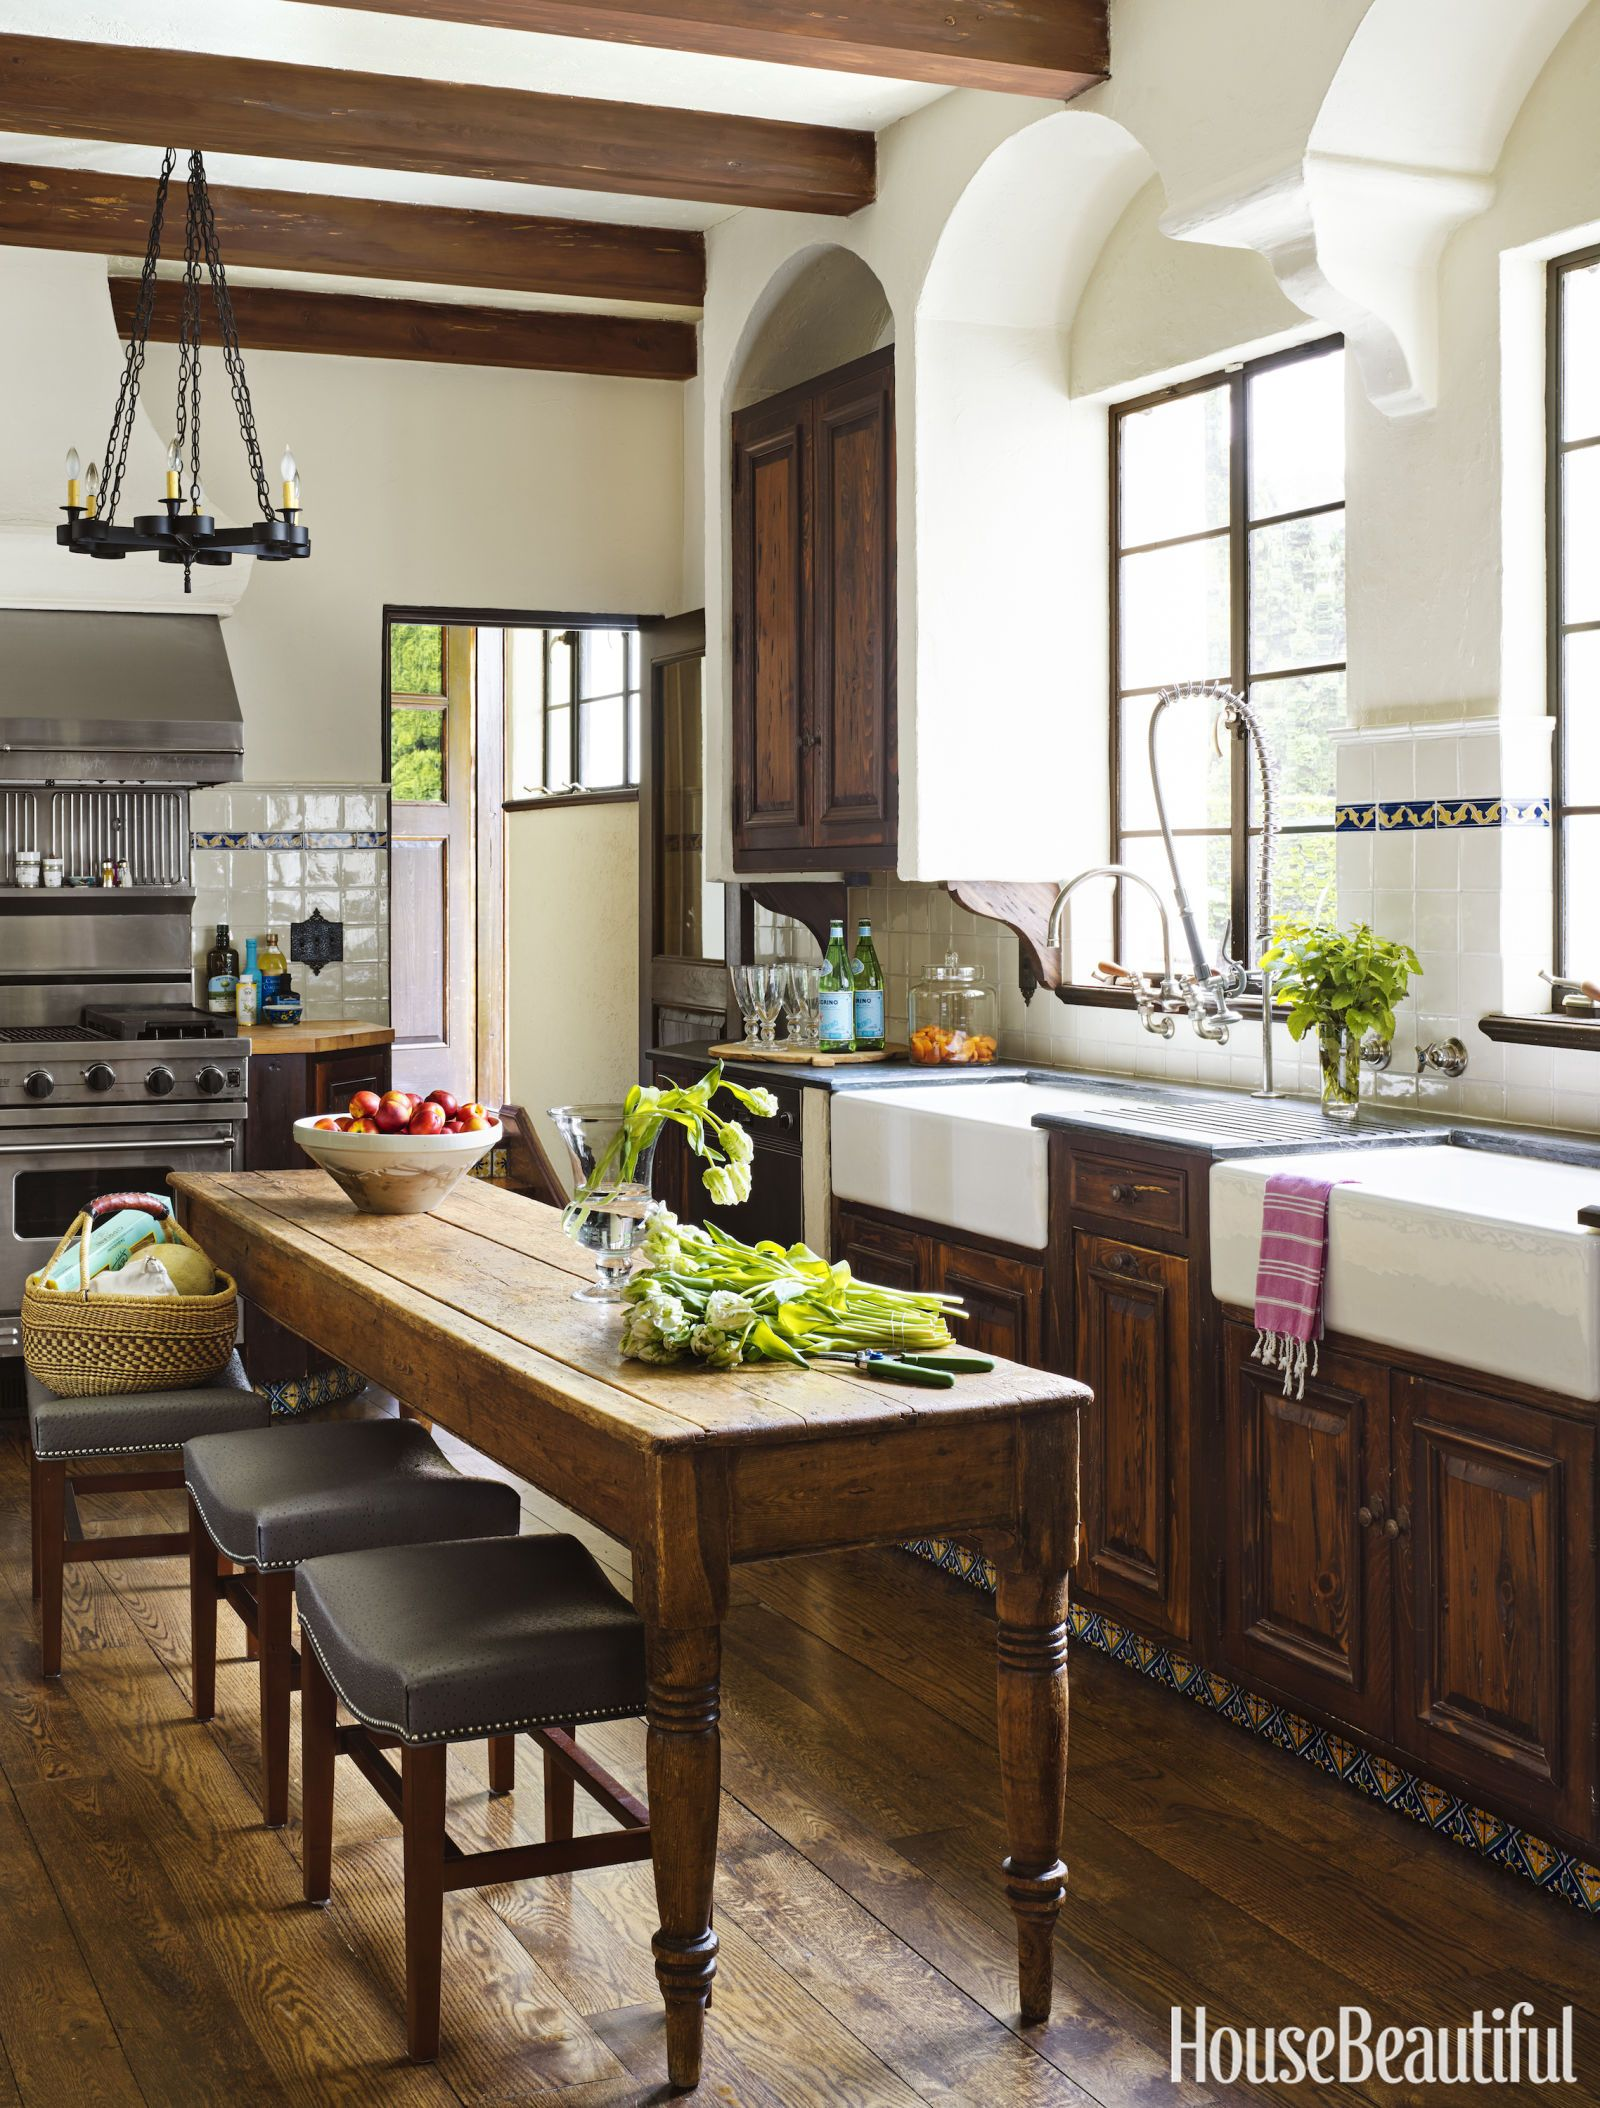 Narrow Kitchen Island With Seating Unpainted Cabinets This Stunning Home Is The Argument For Decorating